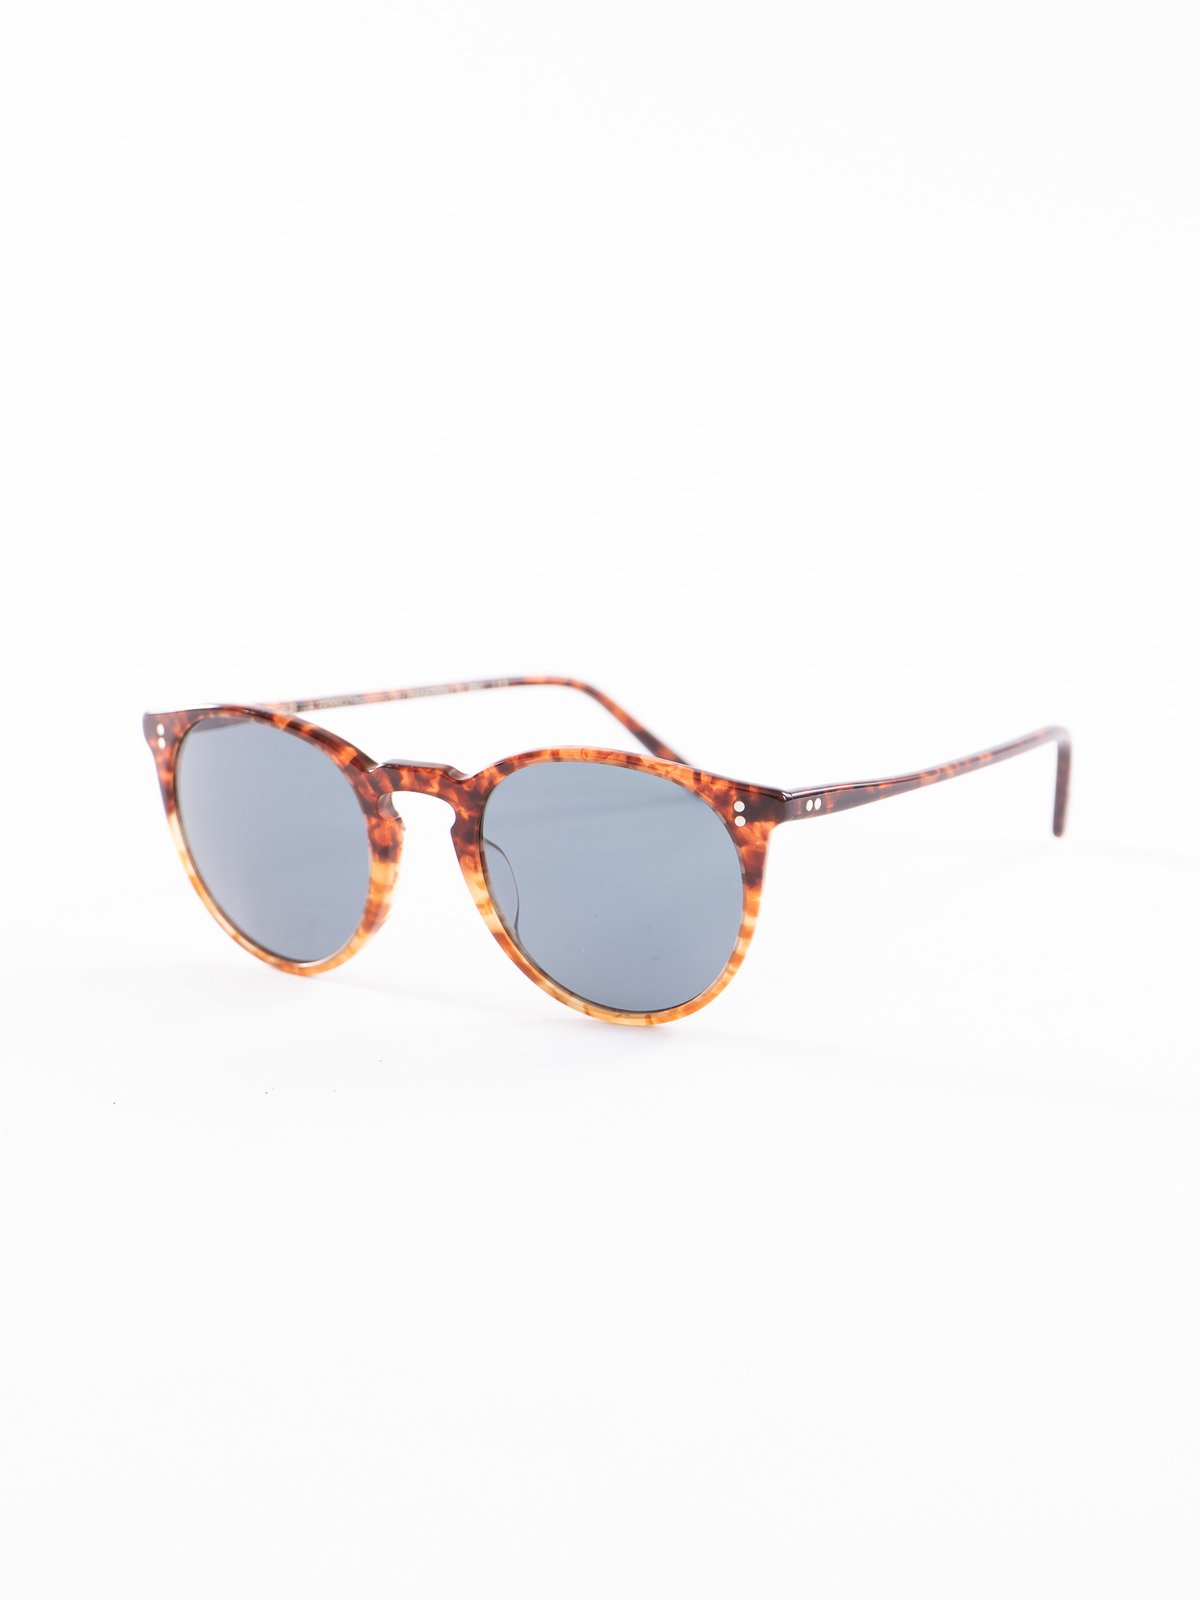 Vintage 1282/Blue Photochromic O'Malley Sunglasses - Image 2